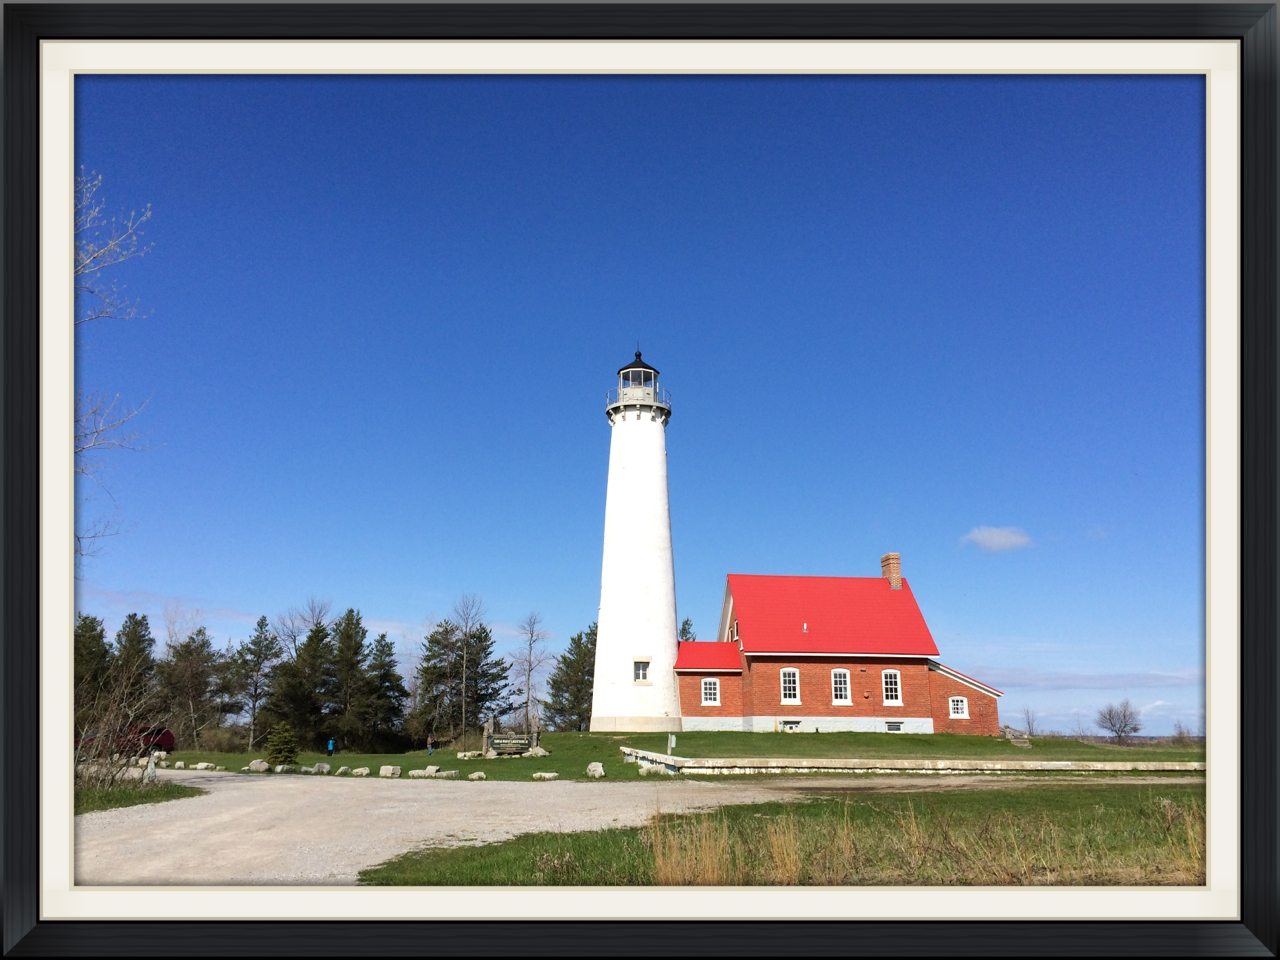 The lighthouse at Tawas Point State Park.